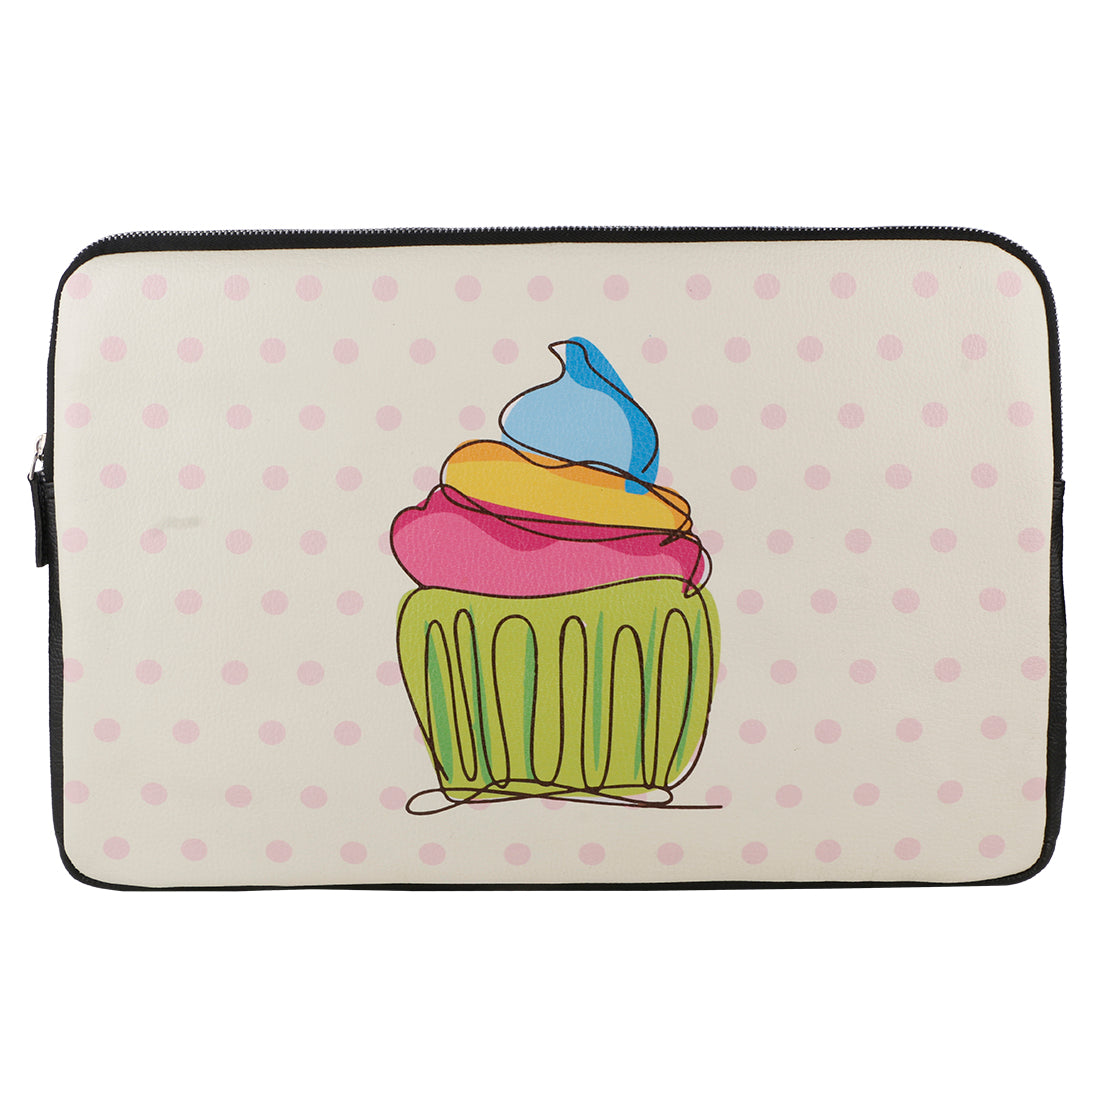 "Cupcake 15"" Laptop Sleeve"